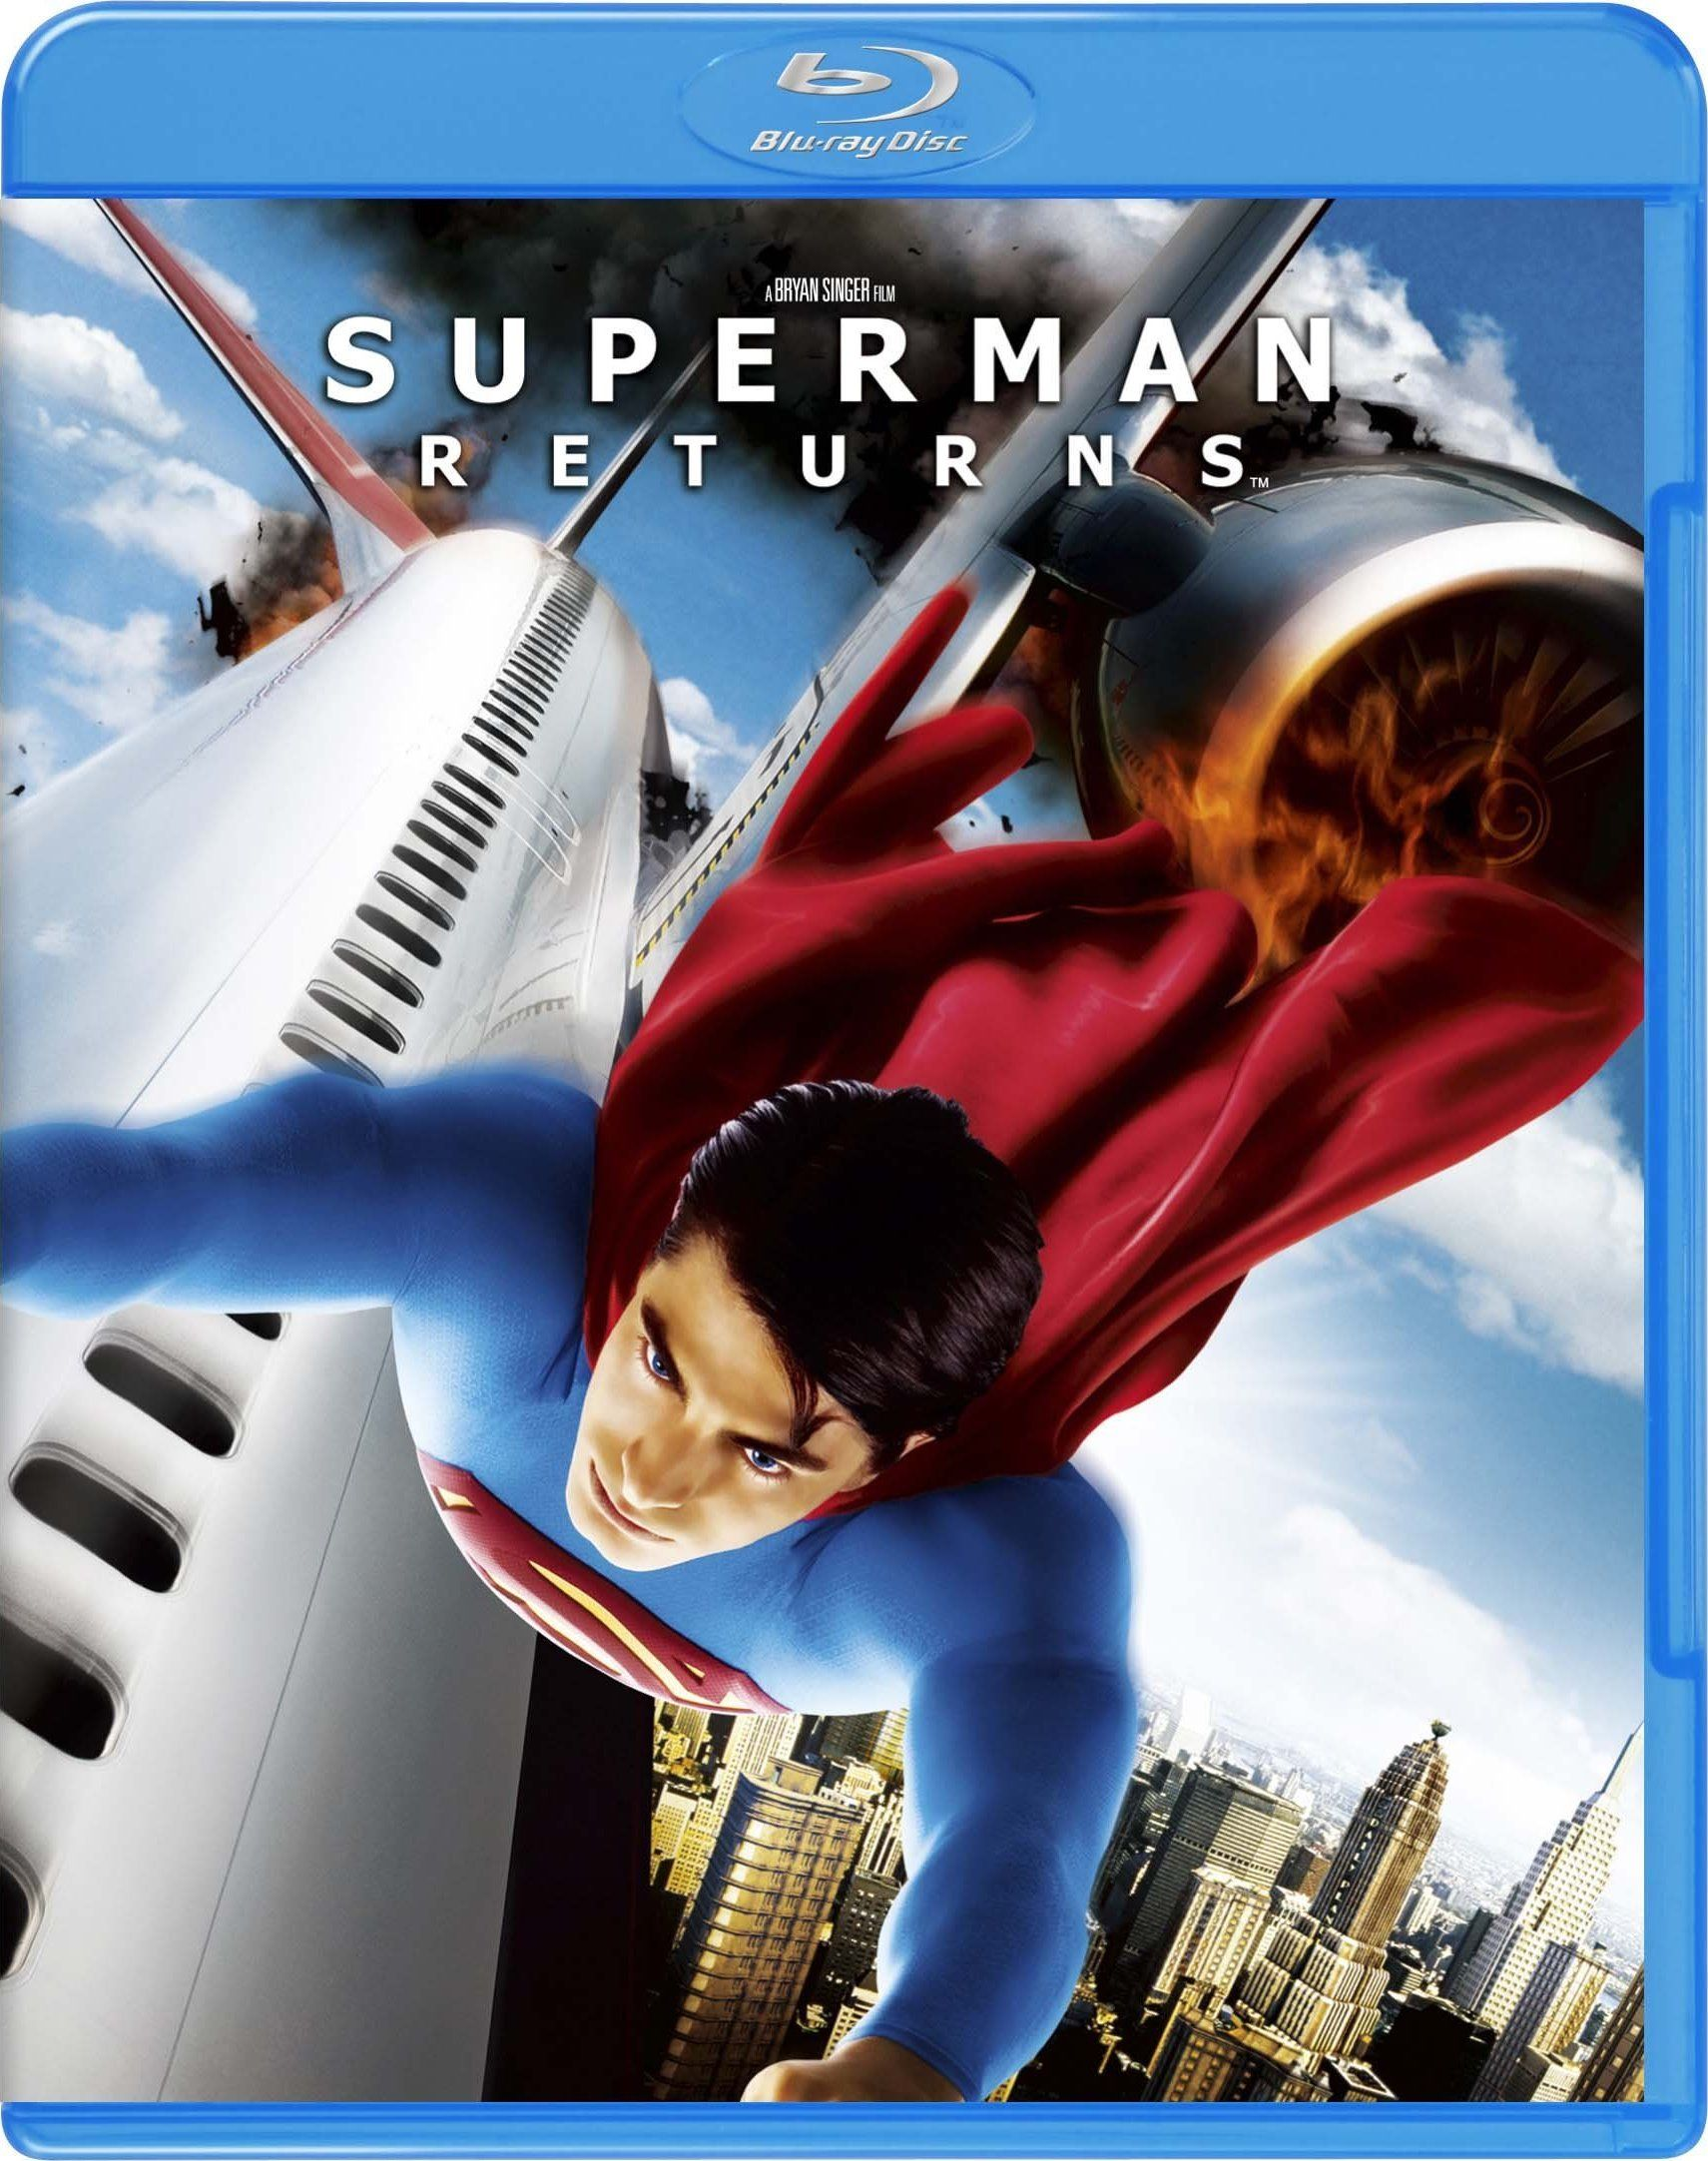 Superman Returns 2006 BluRay 720p 1.50GB [Hindi DD 2.0 – English DD 2.0] Esub MKV